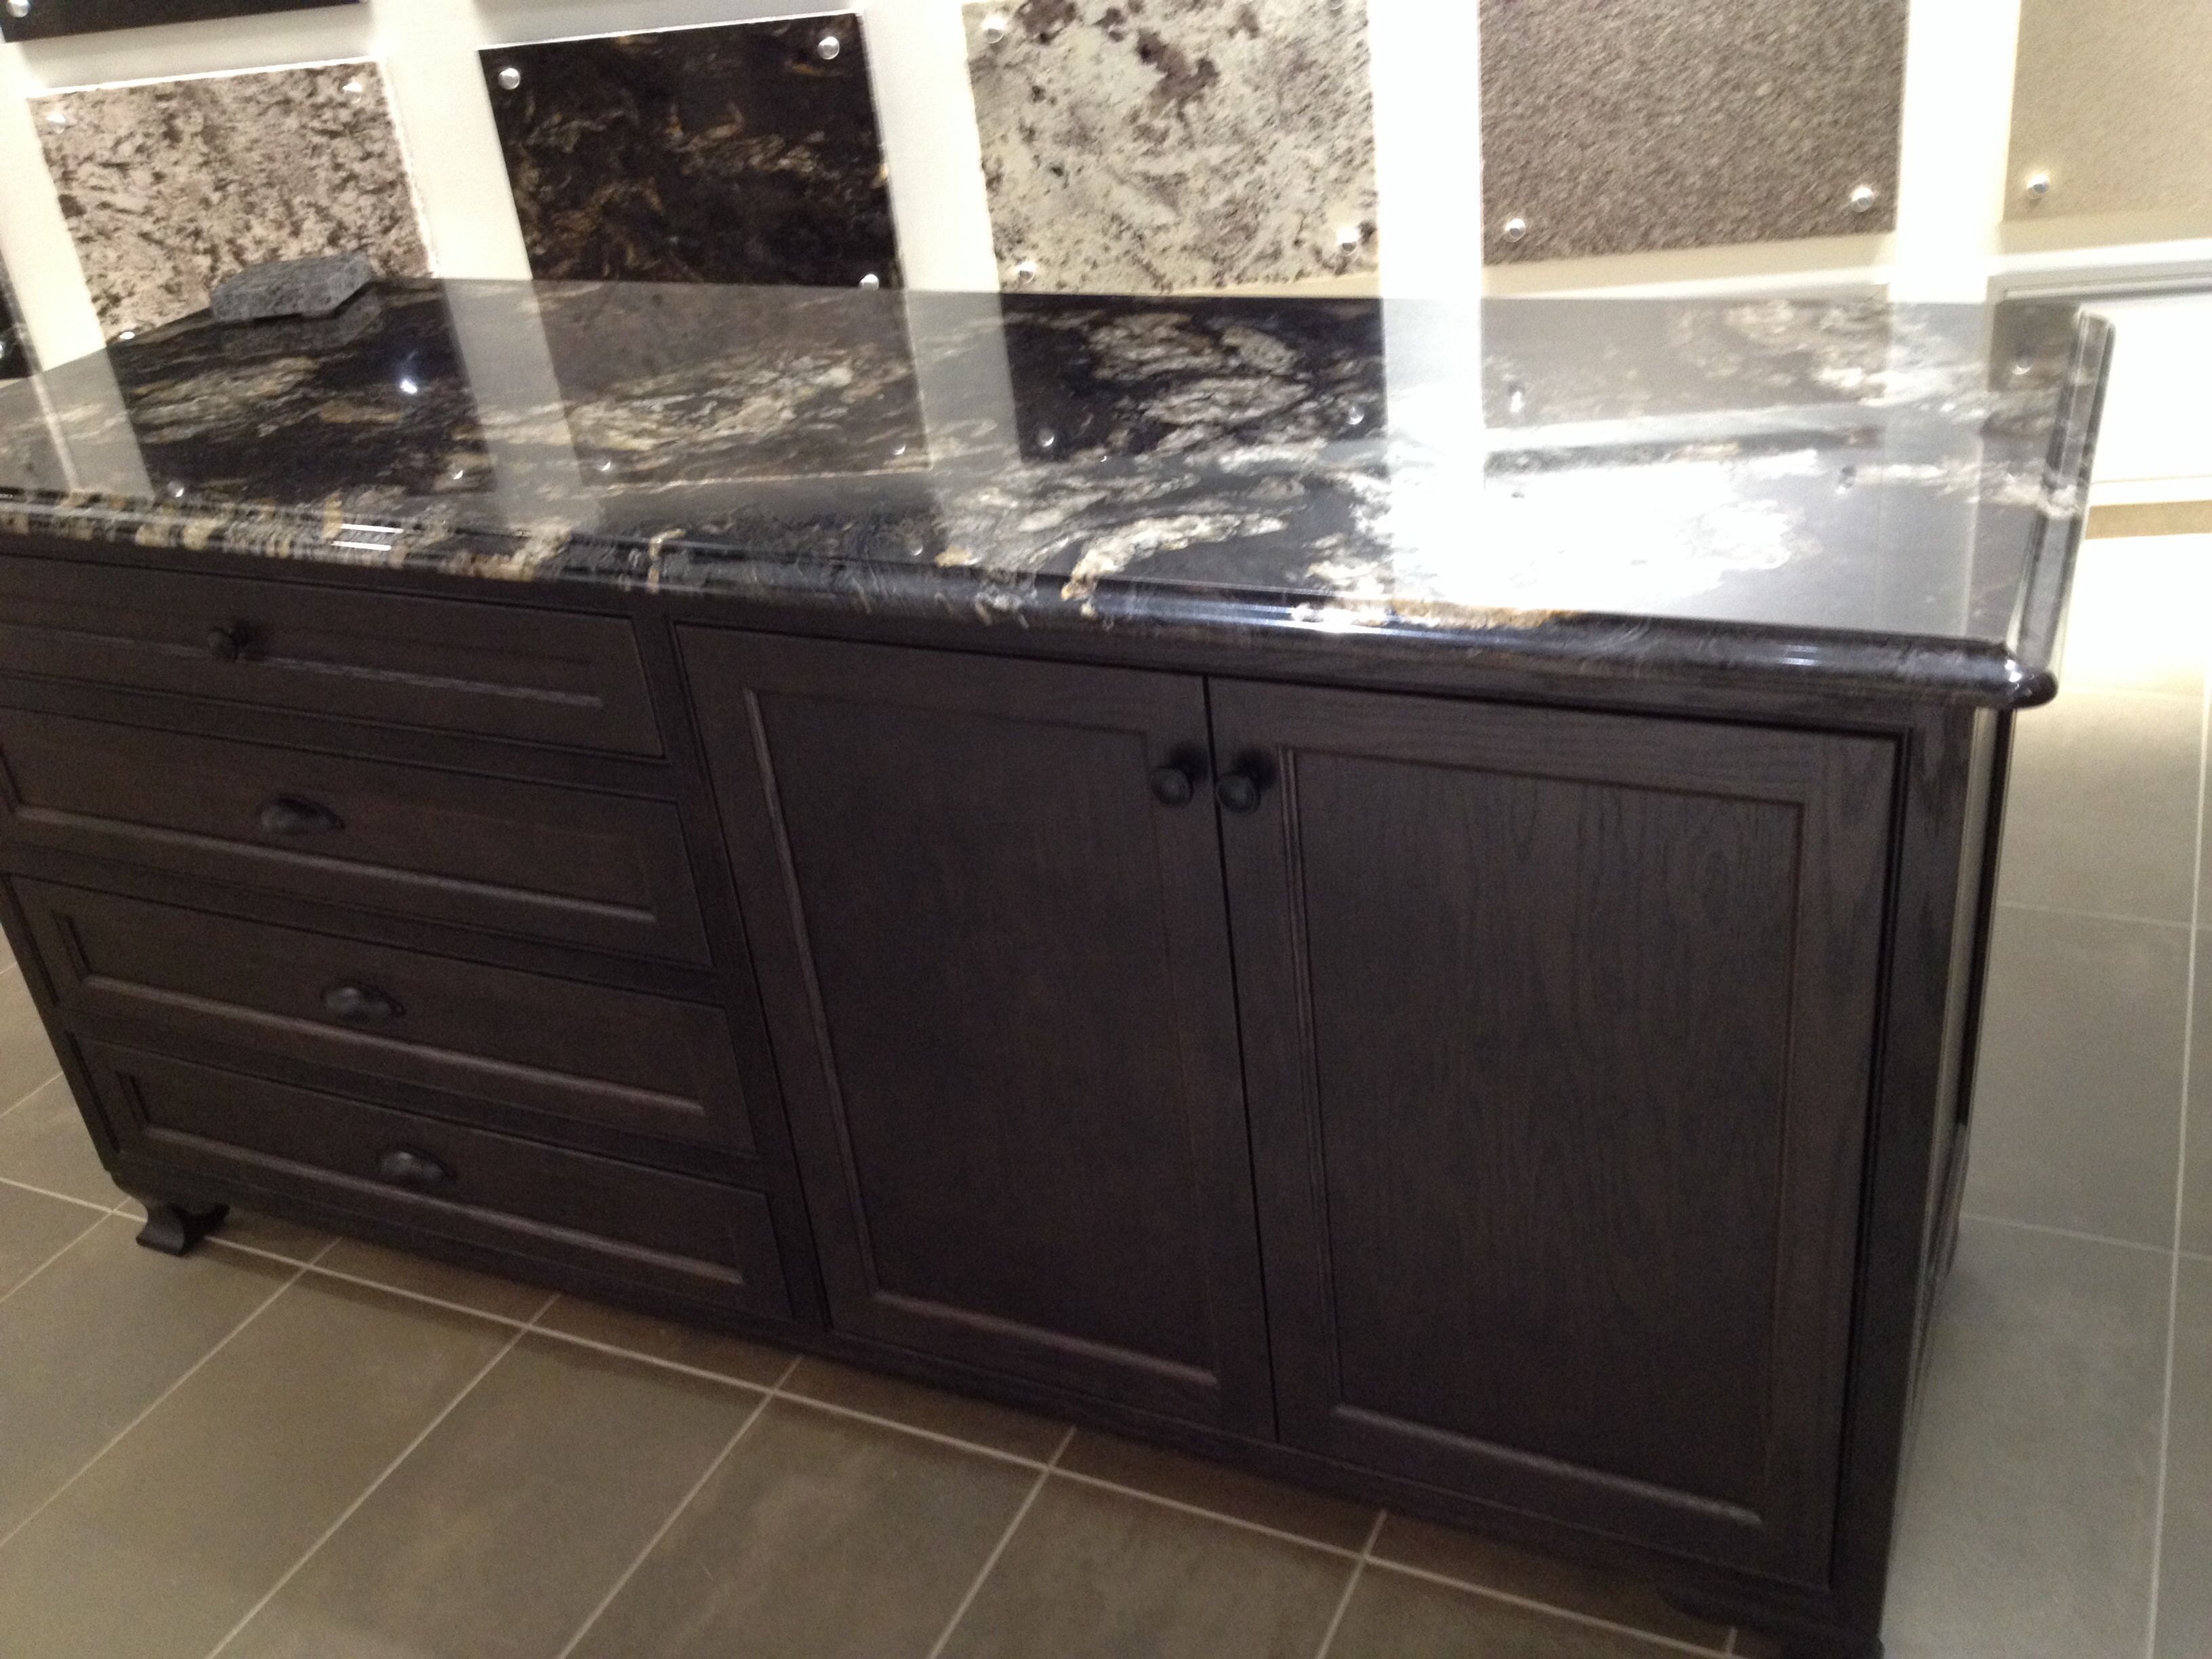 Best Black Titanium Granite With Dark Brown Cabinets Home 400 x 300